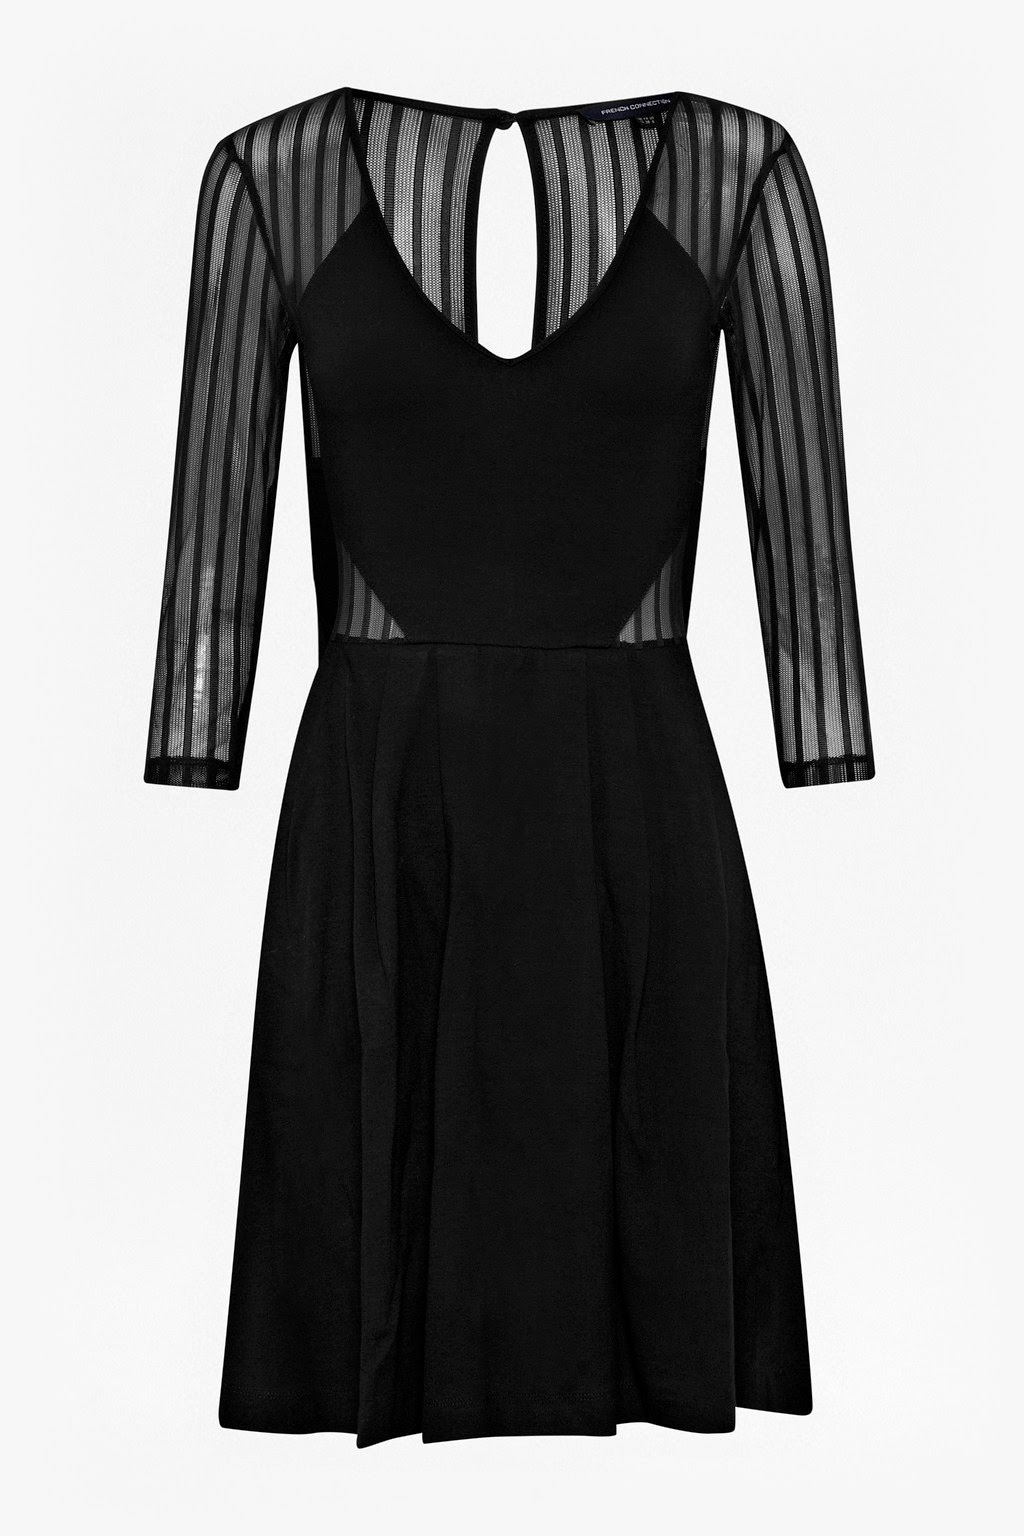 french connection black sheer dress, stripe sheer dress,